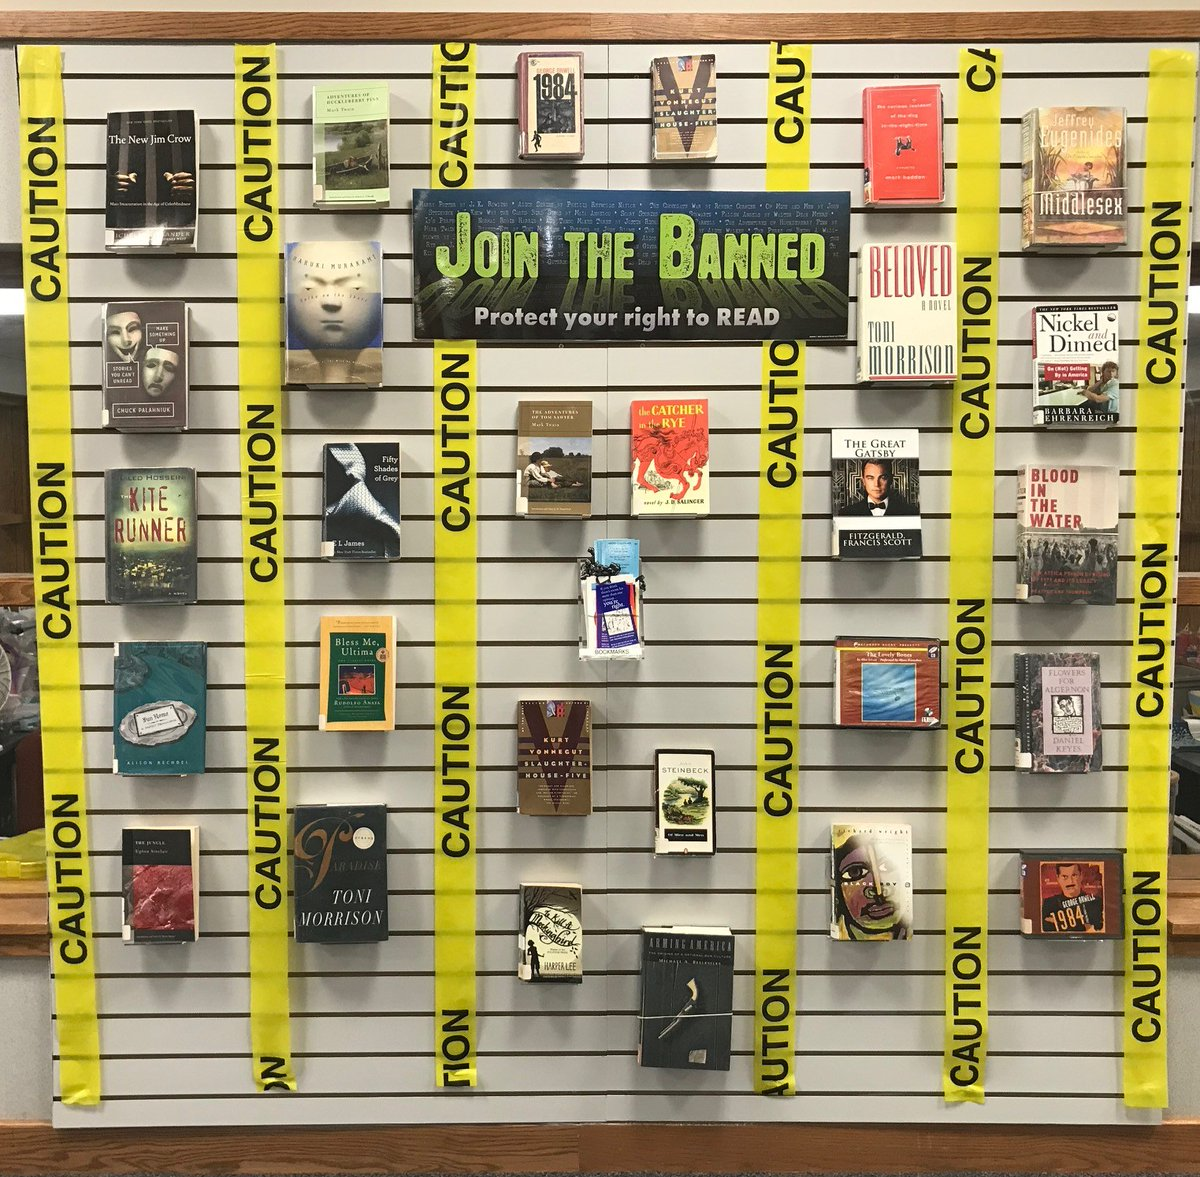 #BannedBooksWeek starts this Sunday, 9/27! Celebrate with a week of virtual activities with @OIF. Check out our cool display of banned books @PLMVKC and get entered to win a couple of banned books for your very own collection.